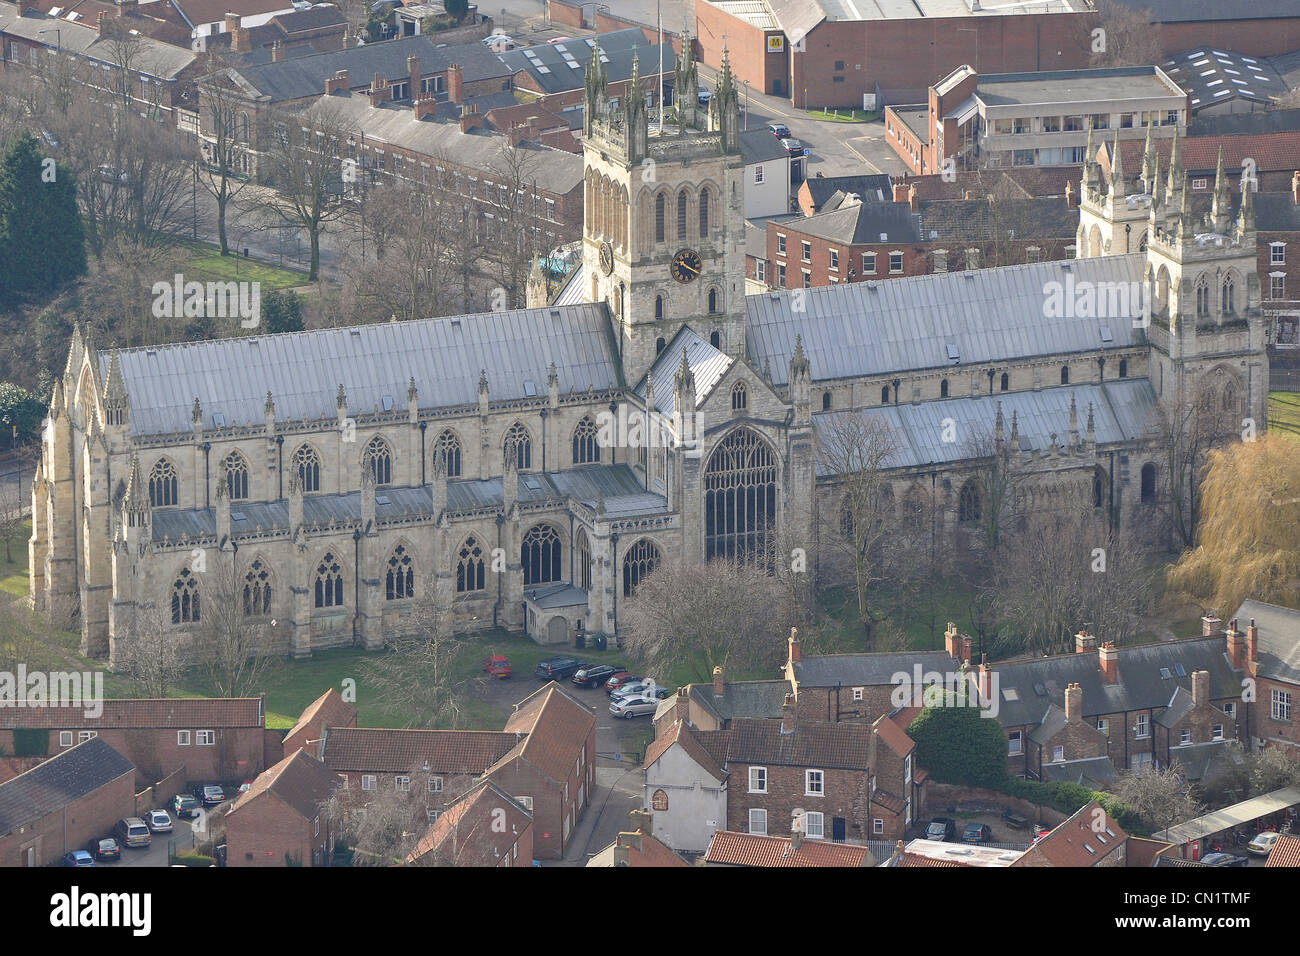 Selby Abbey North Yorkshire from the air. - Stock Image